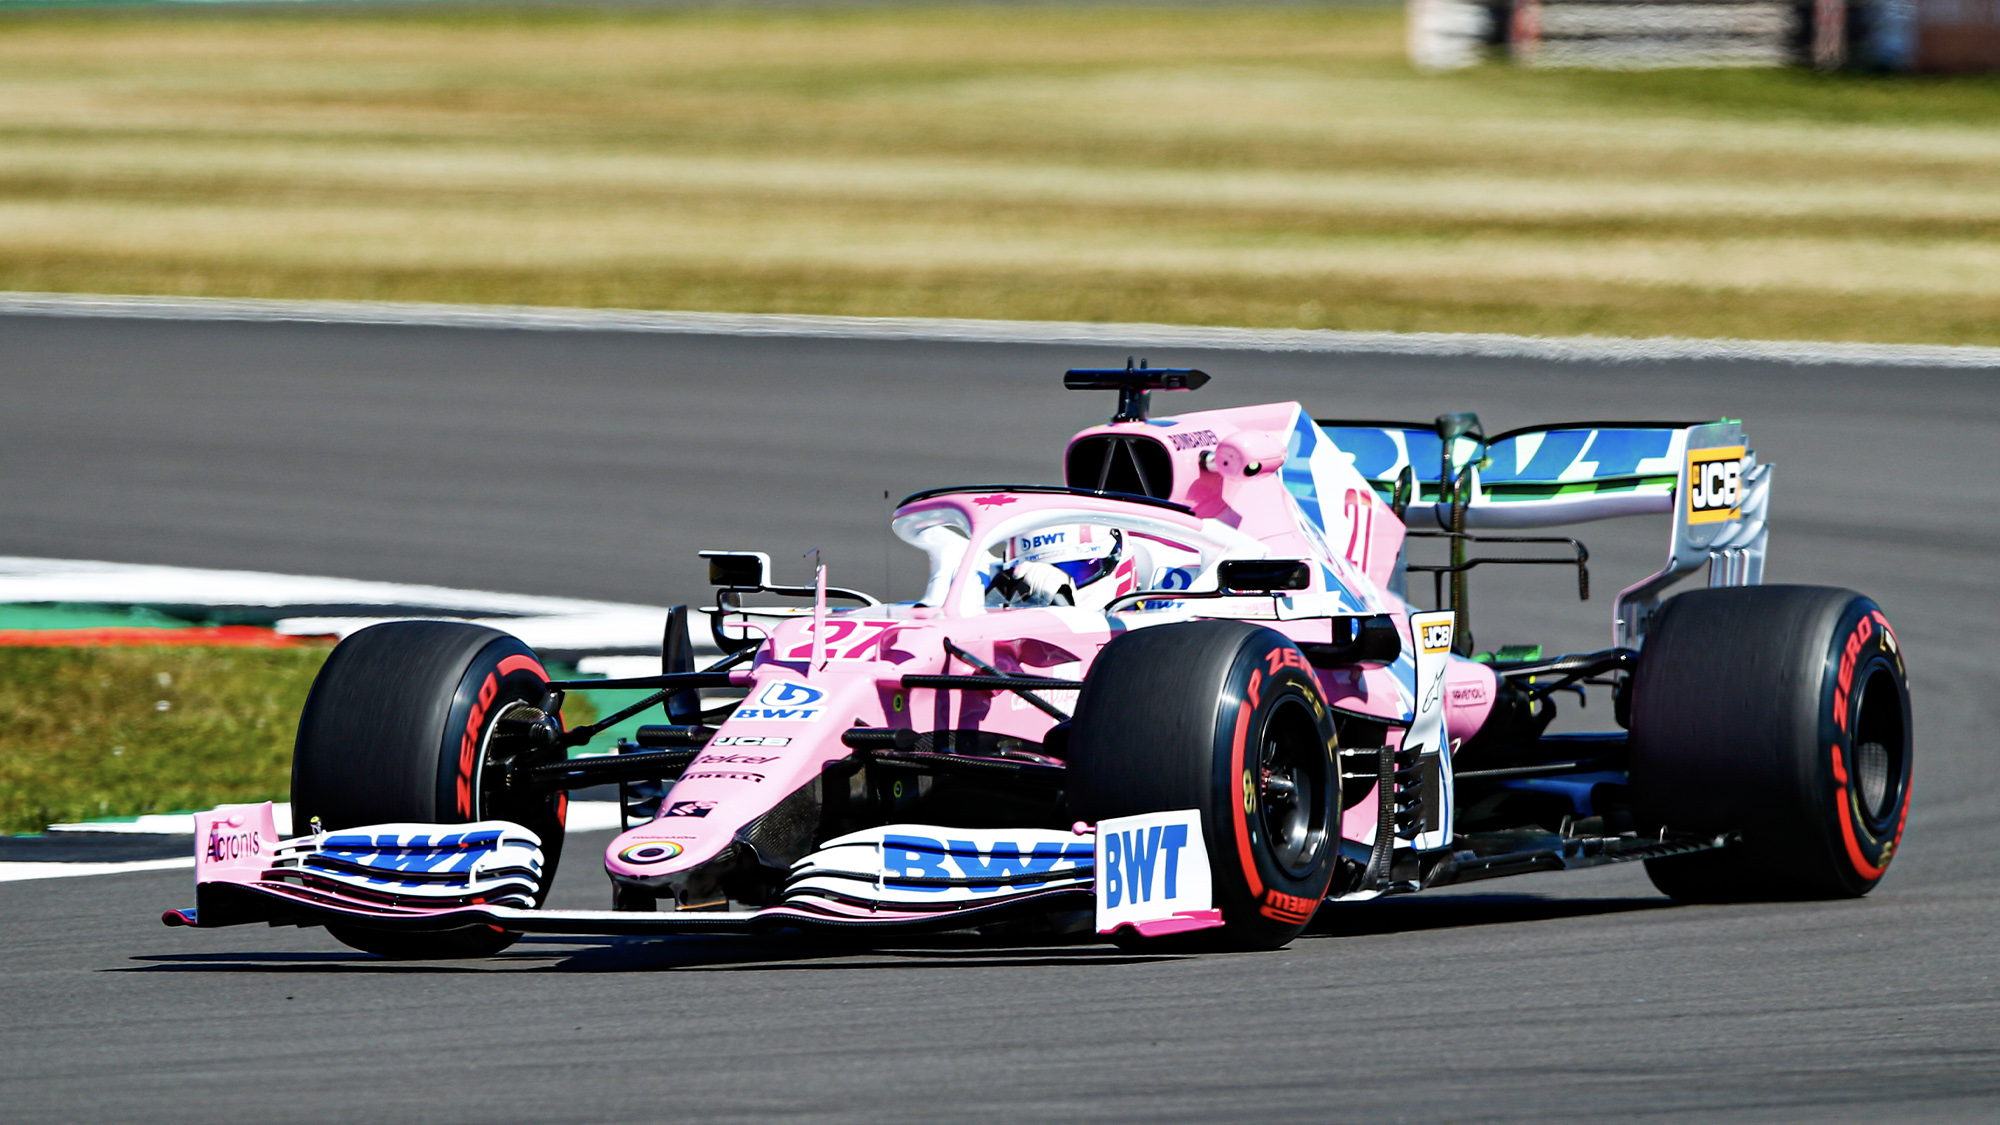 Nico Hulkenberg in his Racing Point duriong practice for the 2020 F1 70th Anniversary Grand Prix at Silverstone